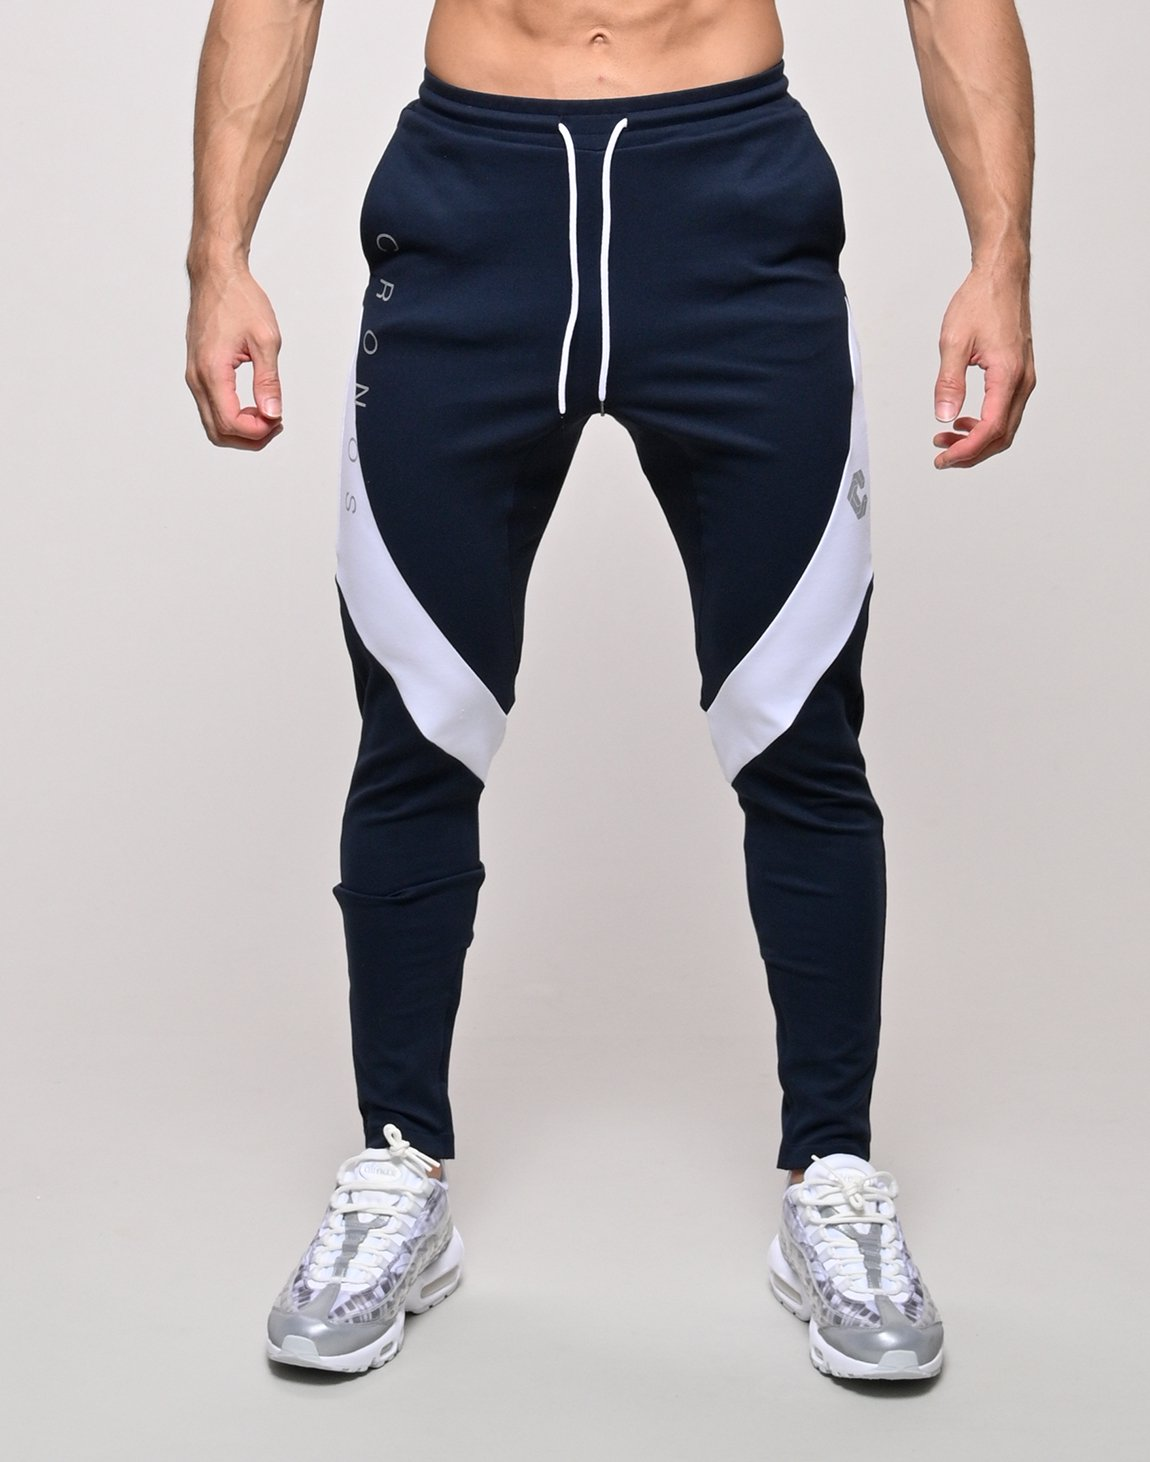 CRONOS QUADRICEPS LINE PANTS【NAVY】